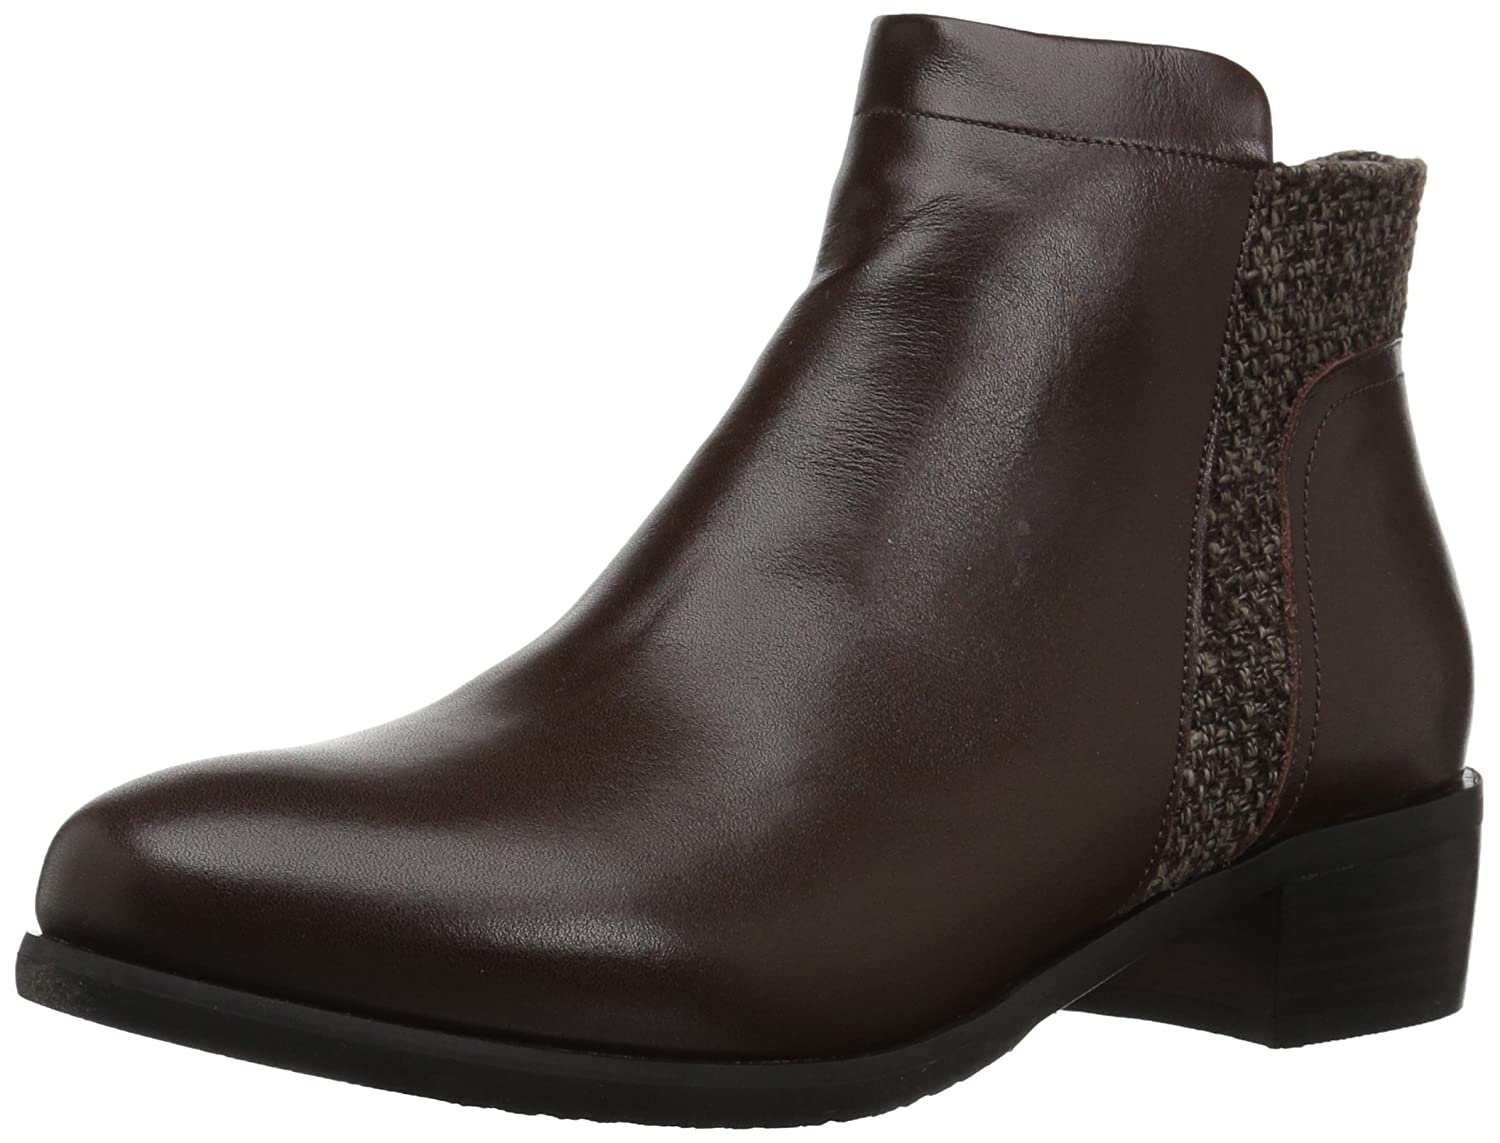 Propet Women's Taneka Ankle Bootie B06XRPZ915 10 W US|Brown